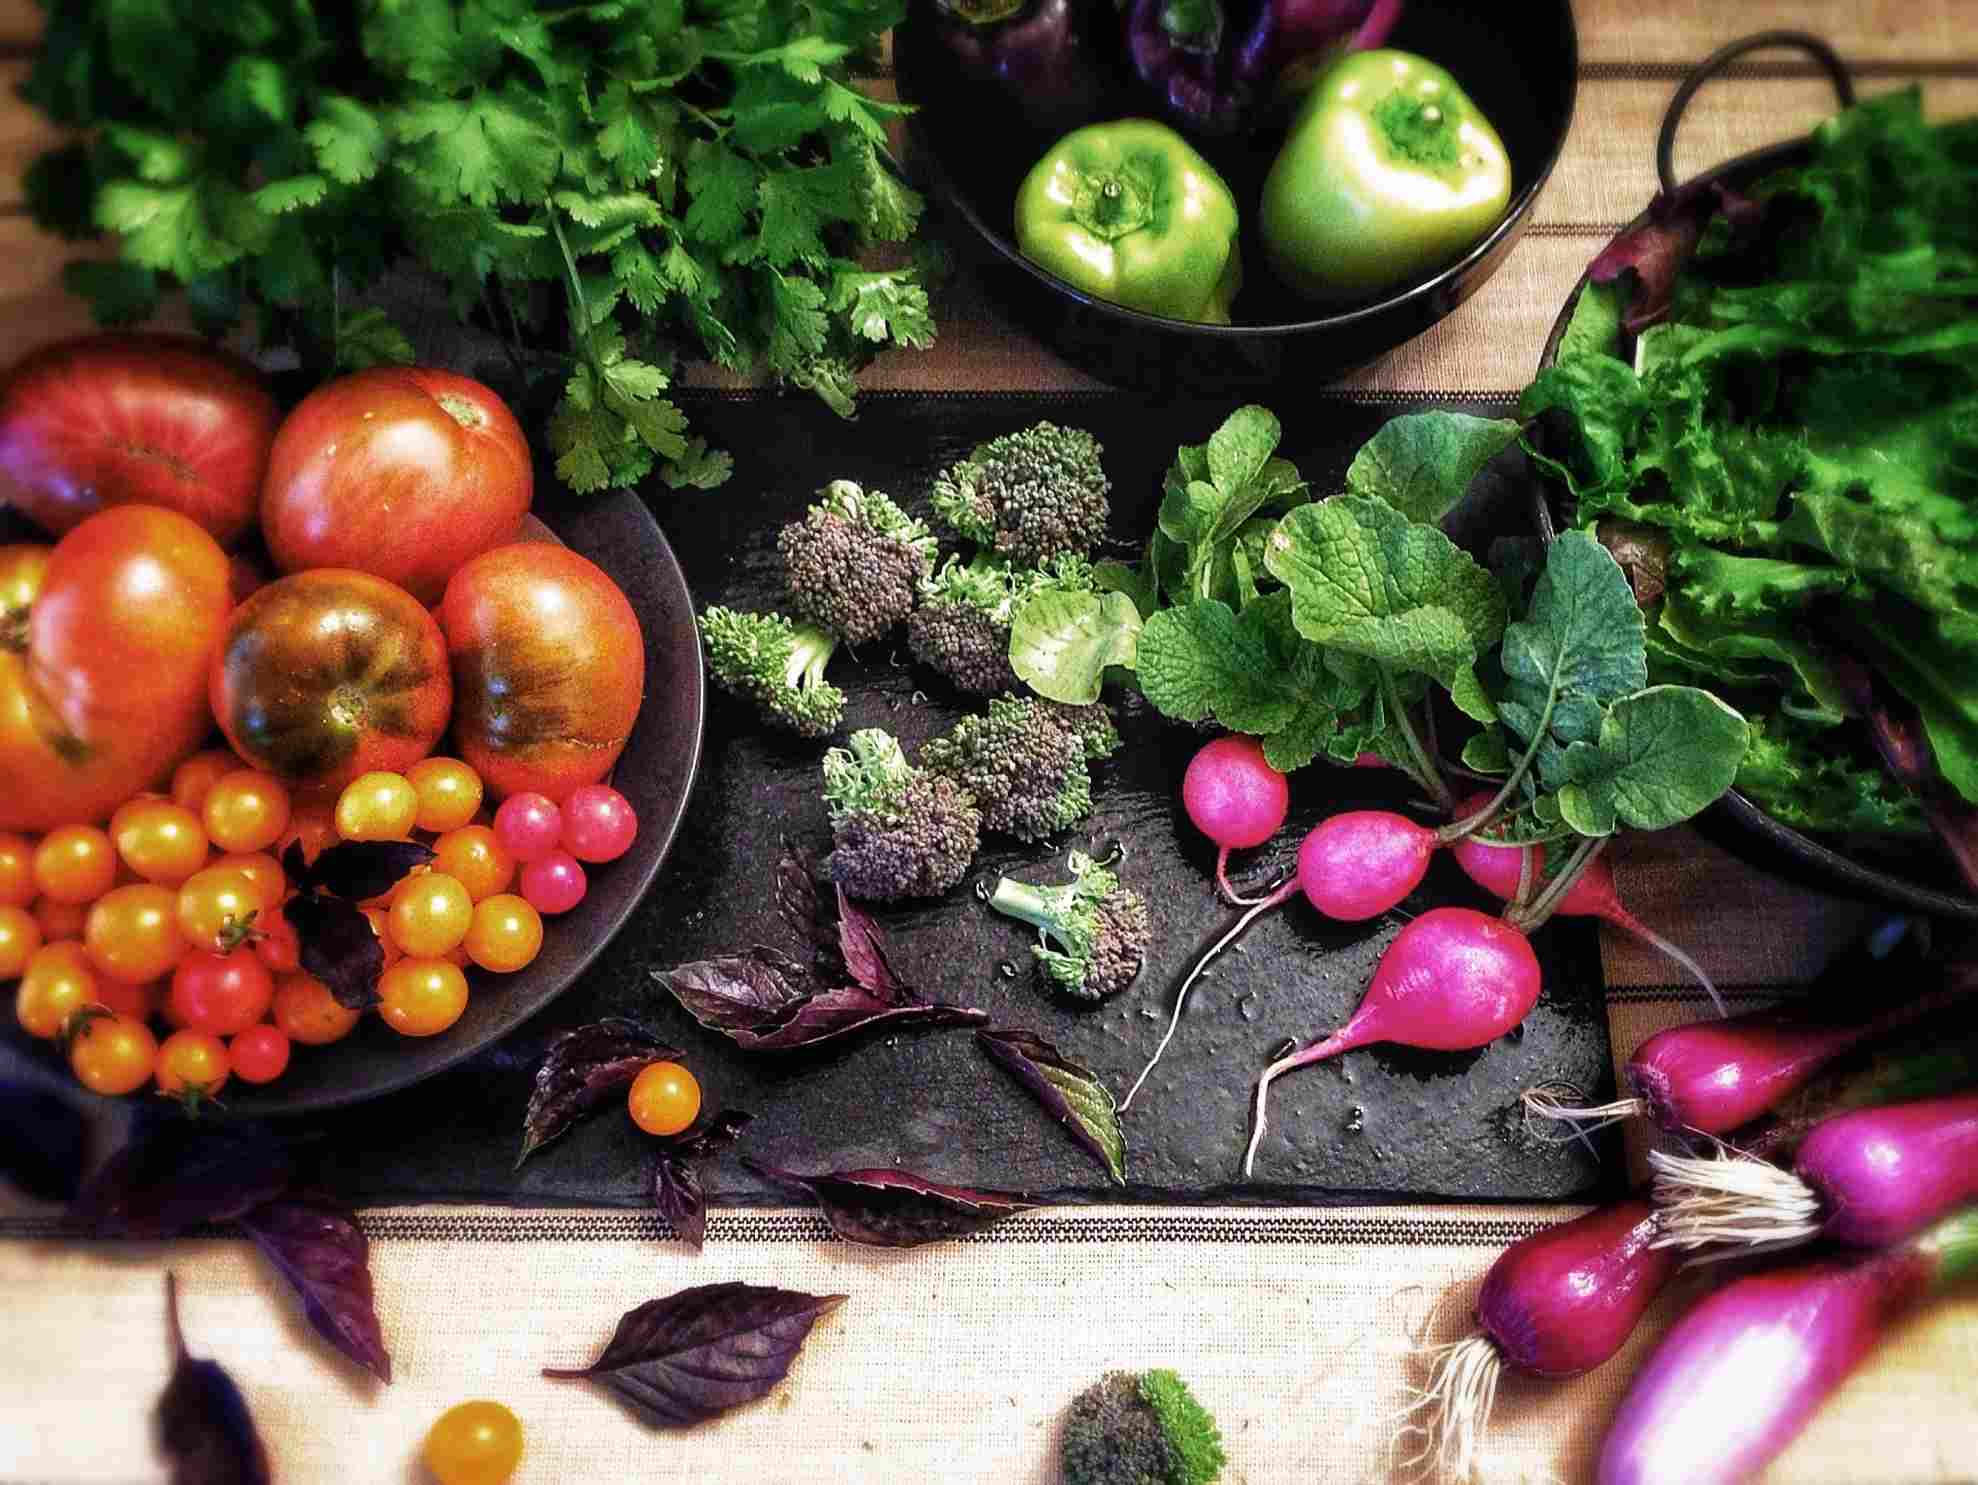 Superfoods to Include in a COPD Diet